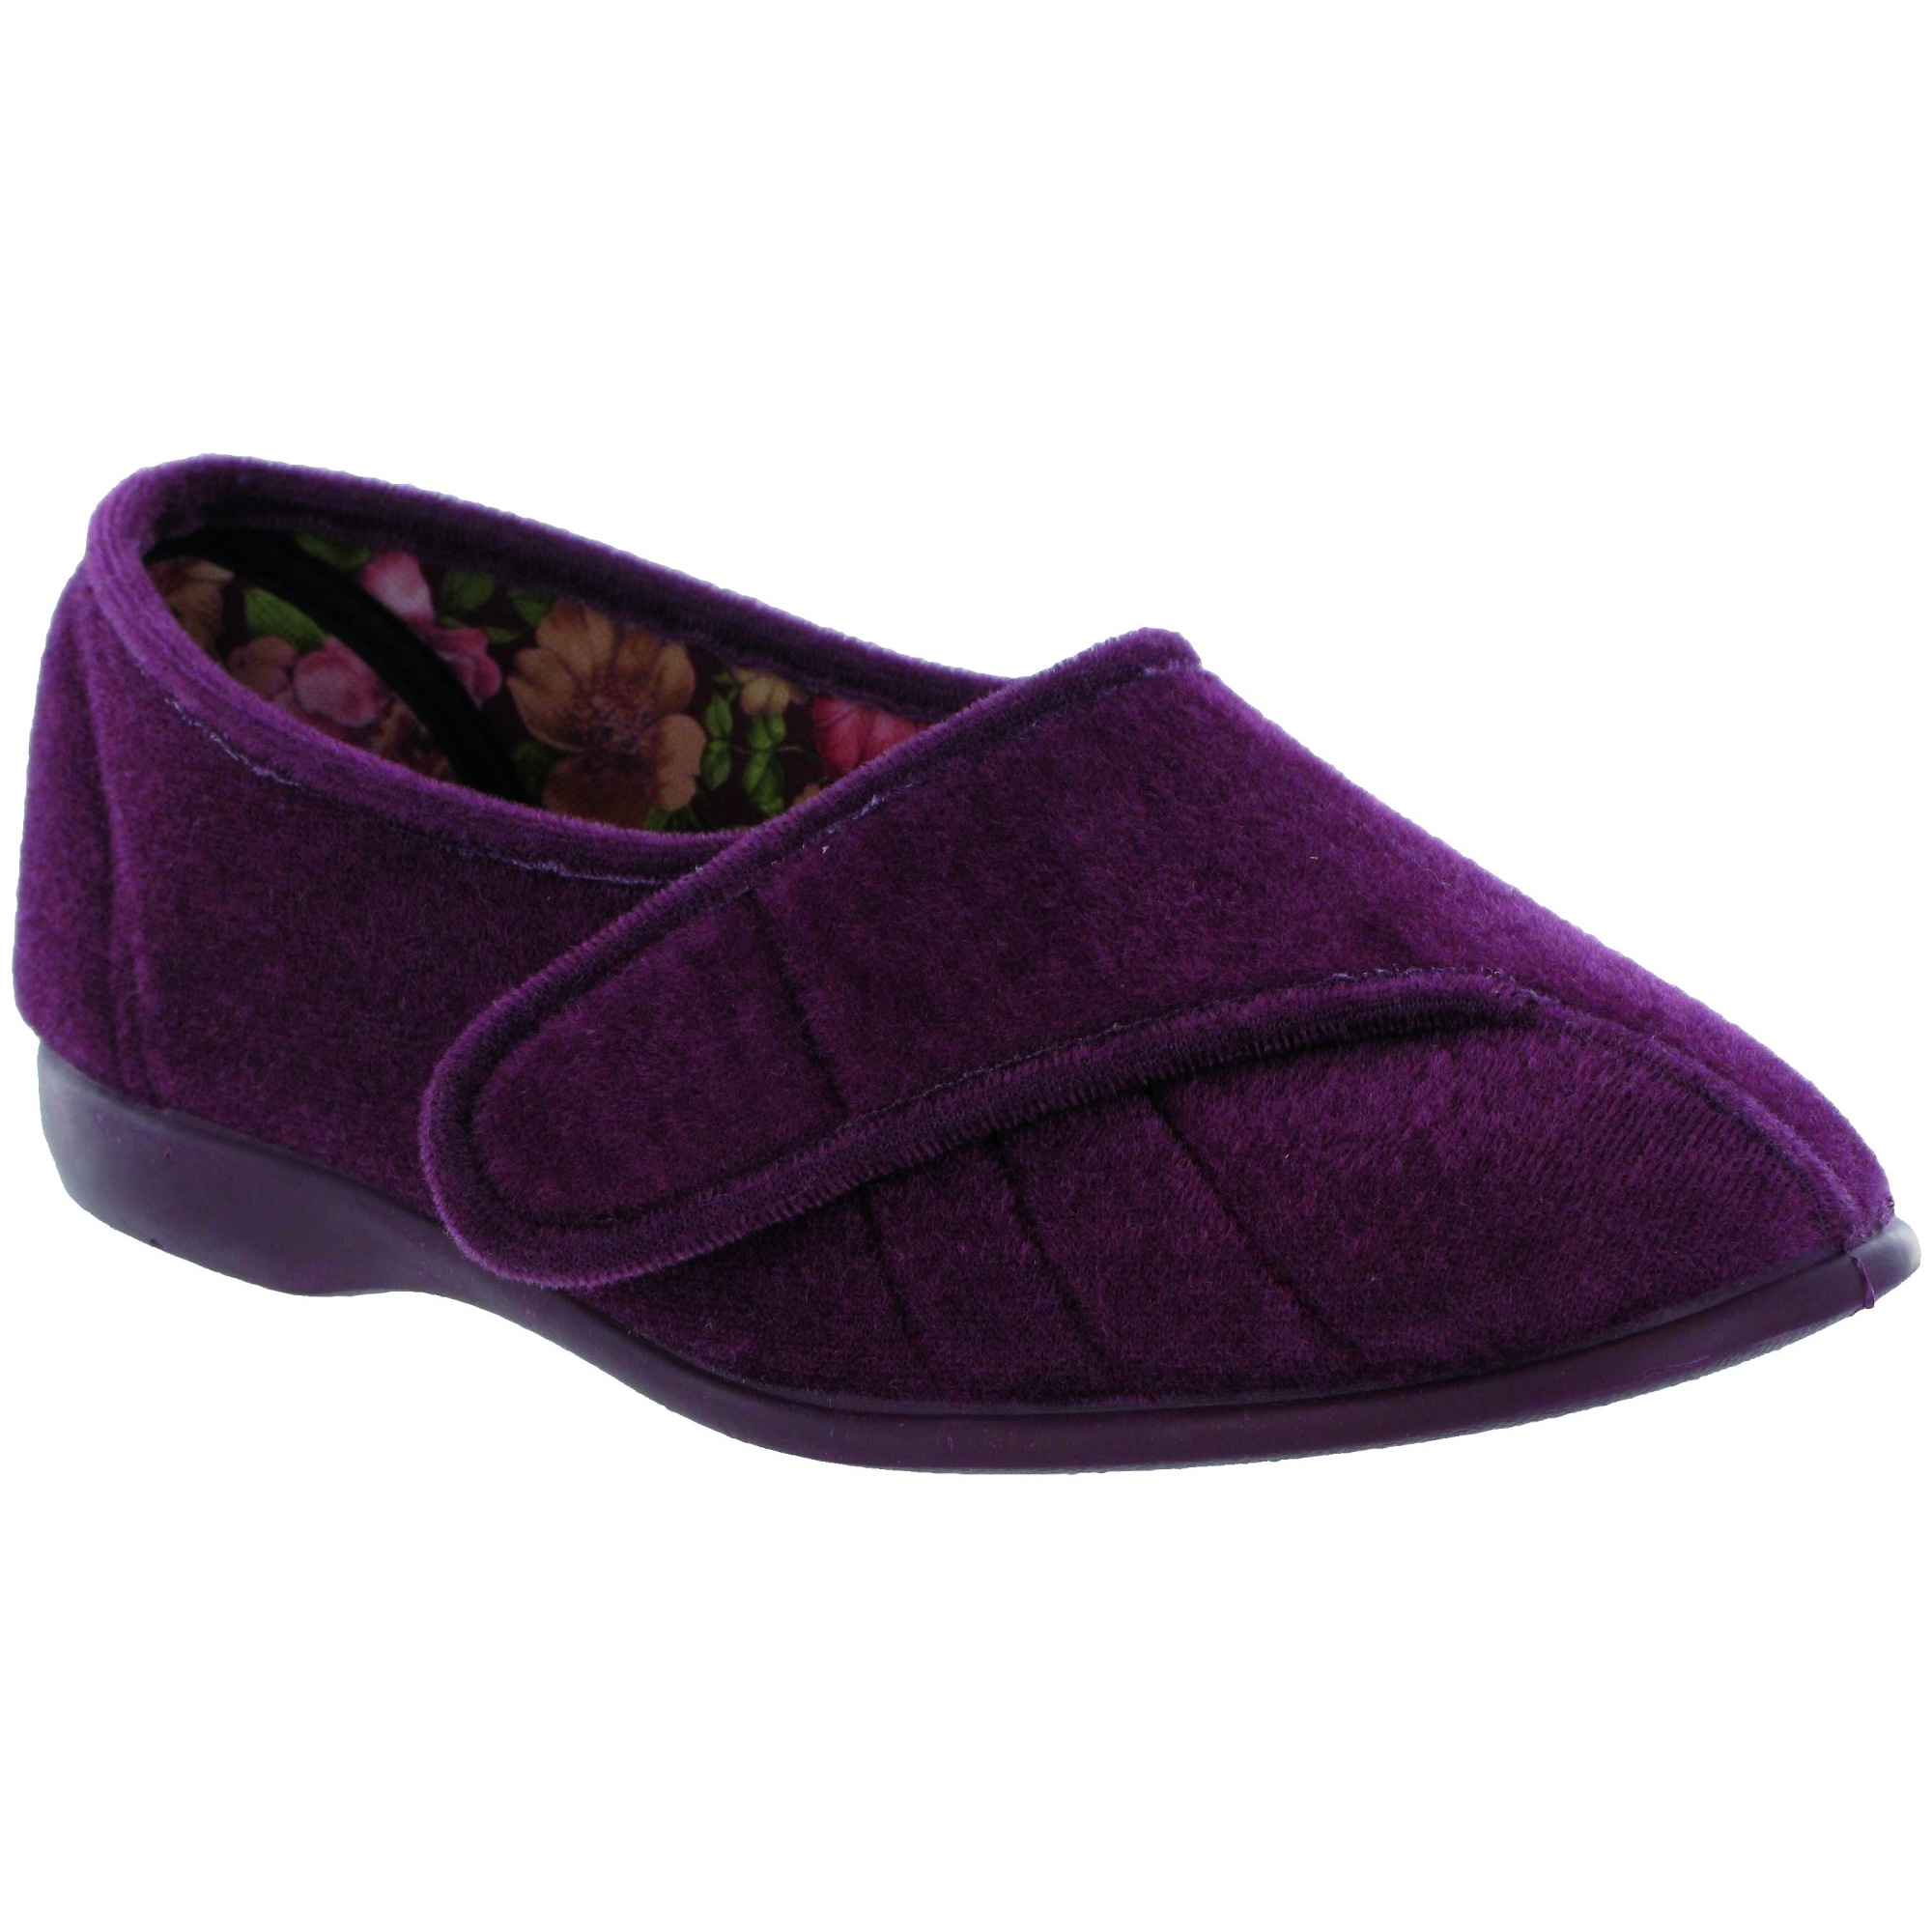 house shoes for - 28 images - mens slippers house shoes ...